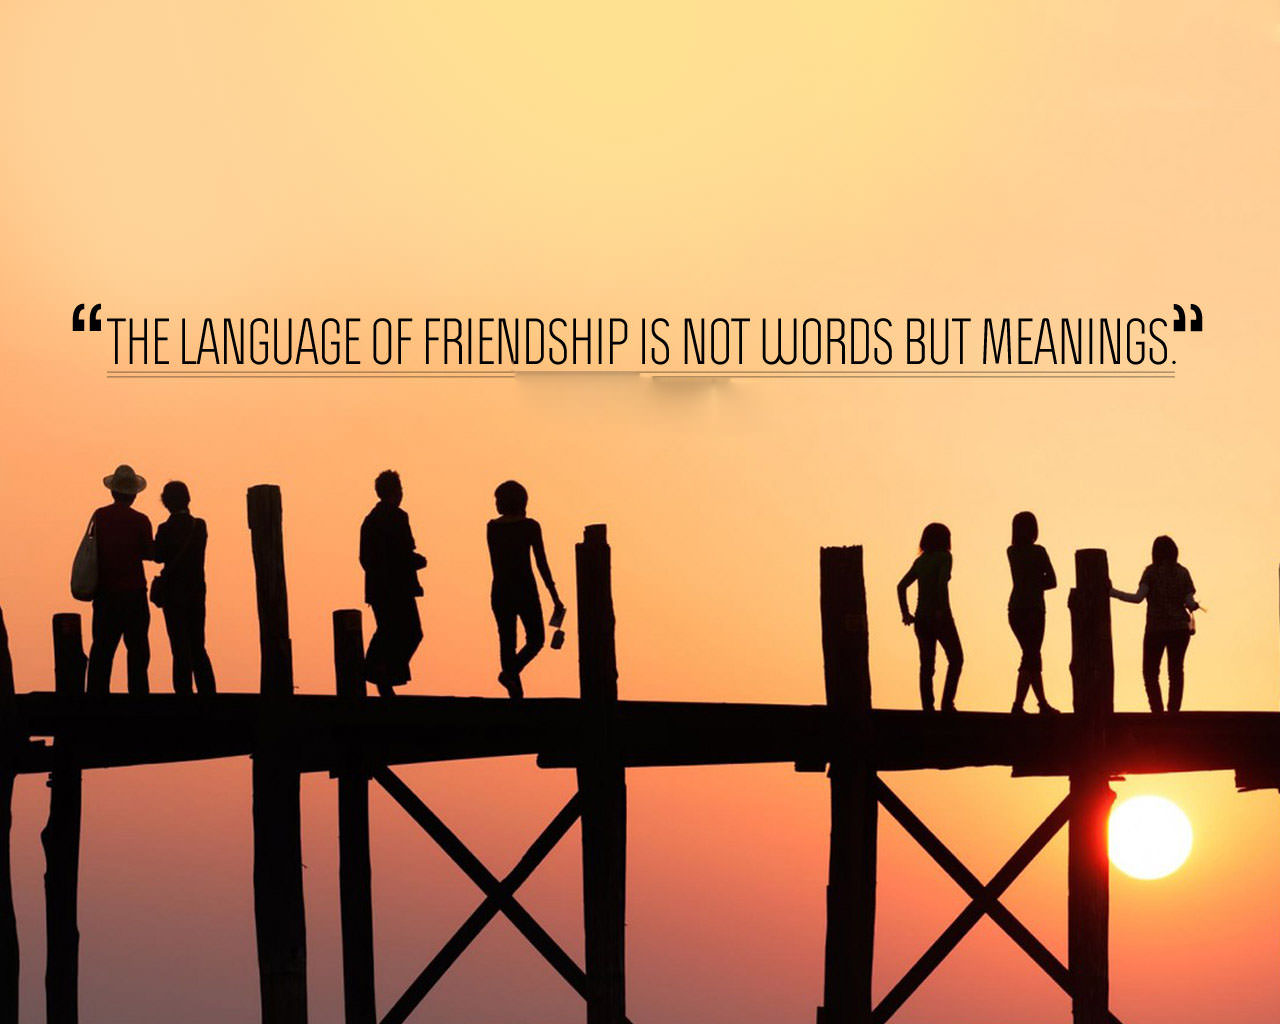 Touching Quotes About Friendship 10  Beautiful & Cute Friendship Hd Wallpaper And Quotes